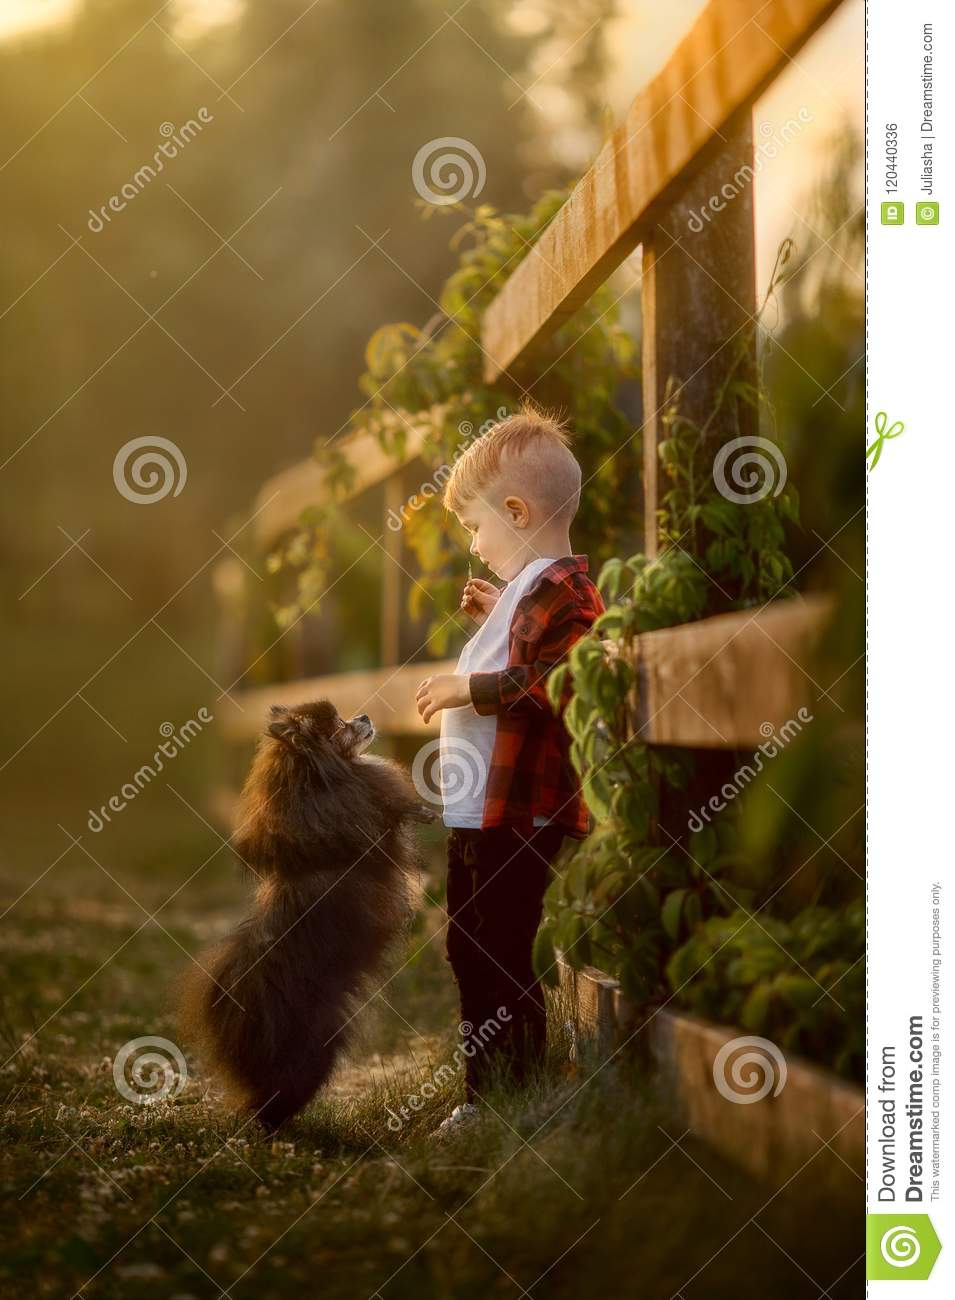 Download Portrait Of A Little Boy With Small Dog In The Park Stock Photo - Image of park, canine: 120440336